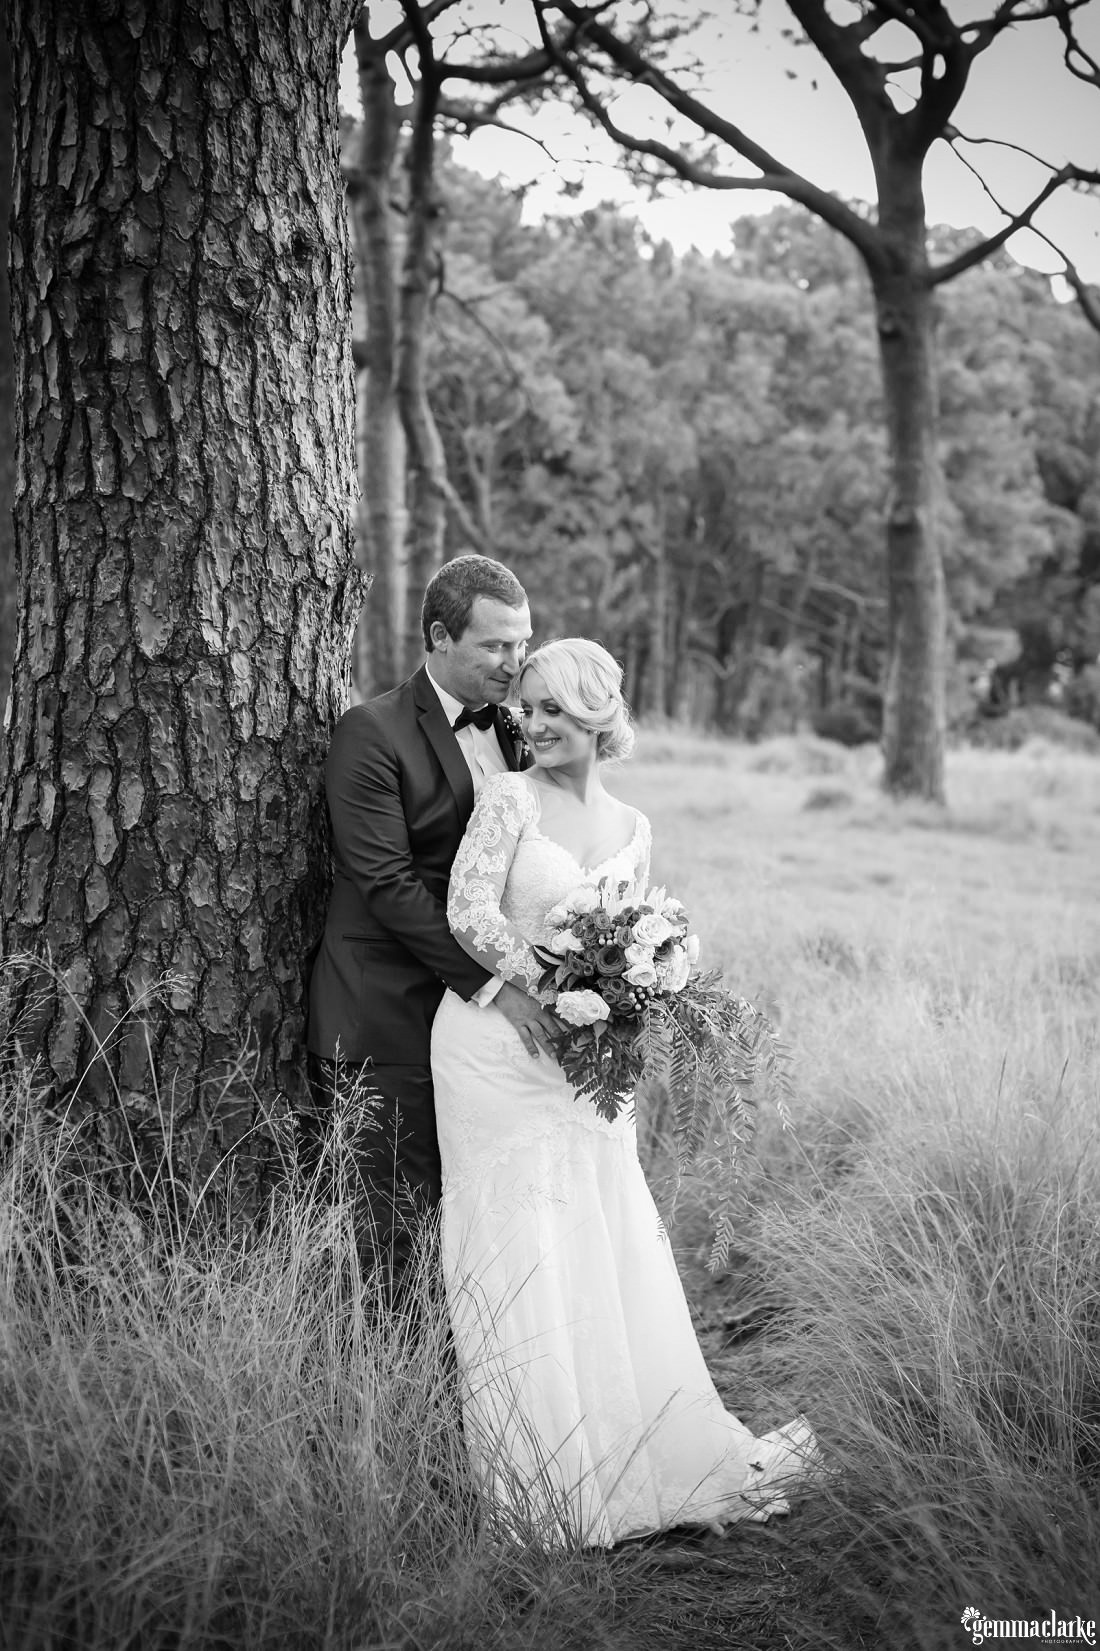 A groom holds his bride and leans against a tree - Centennial Park Wedding